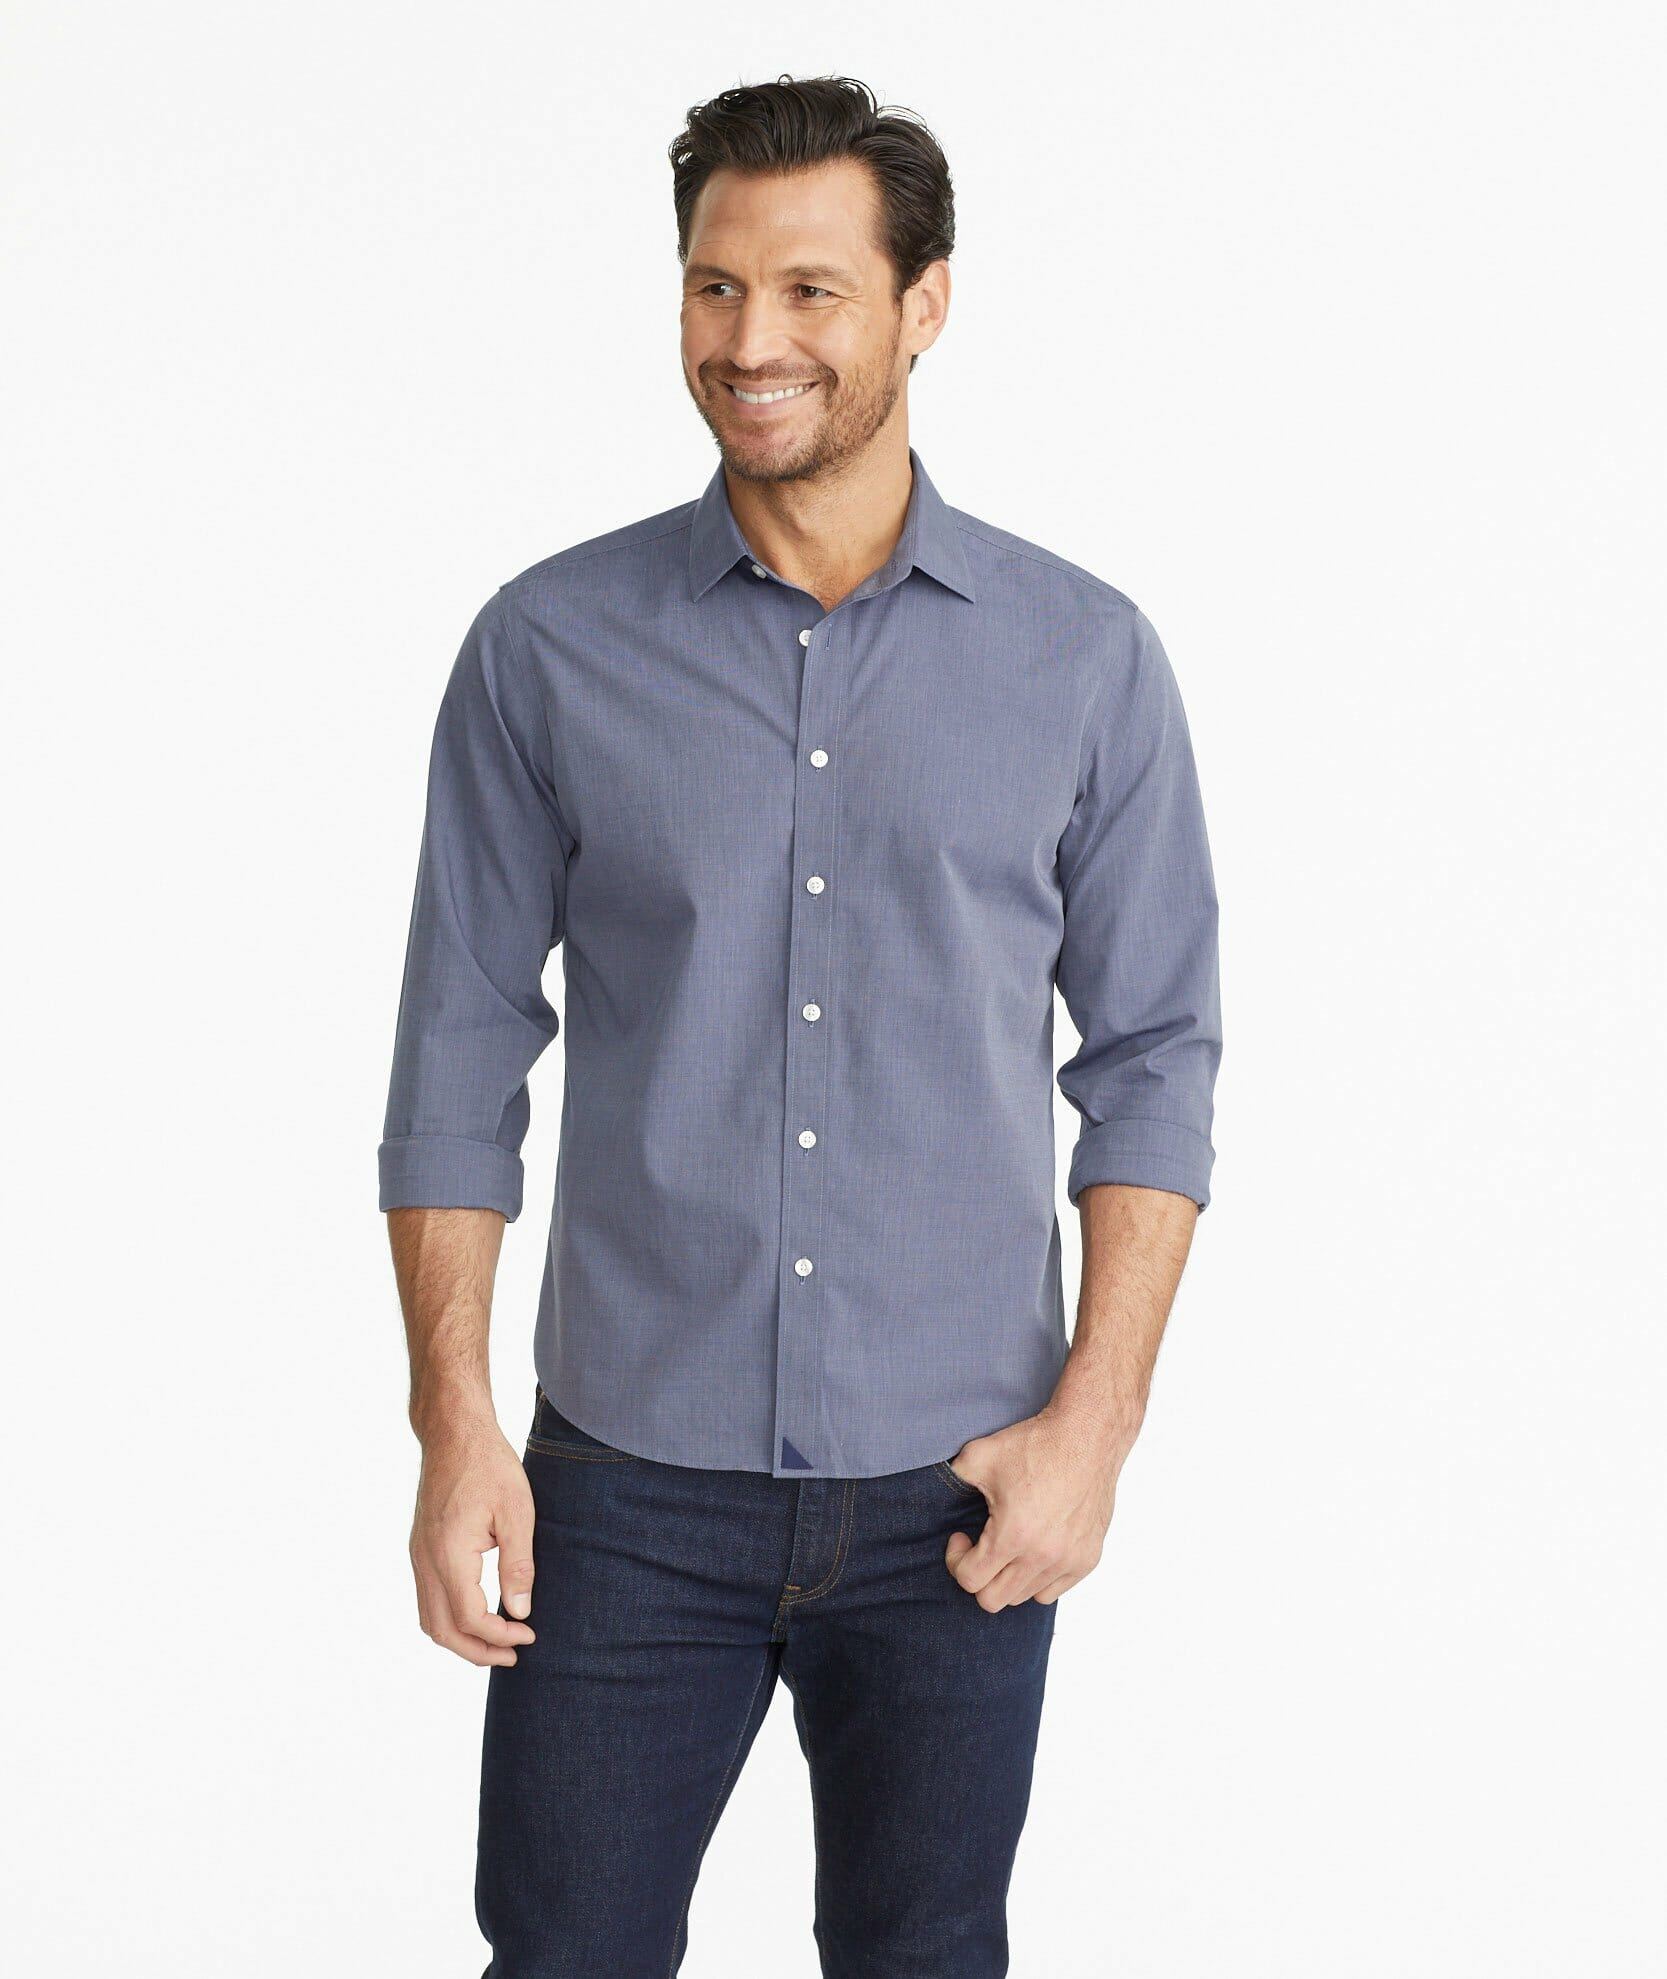 Untuckit has made a name producing shirts with a straight hem to wear untucked